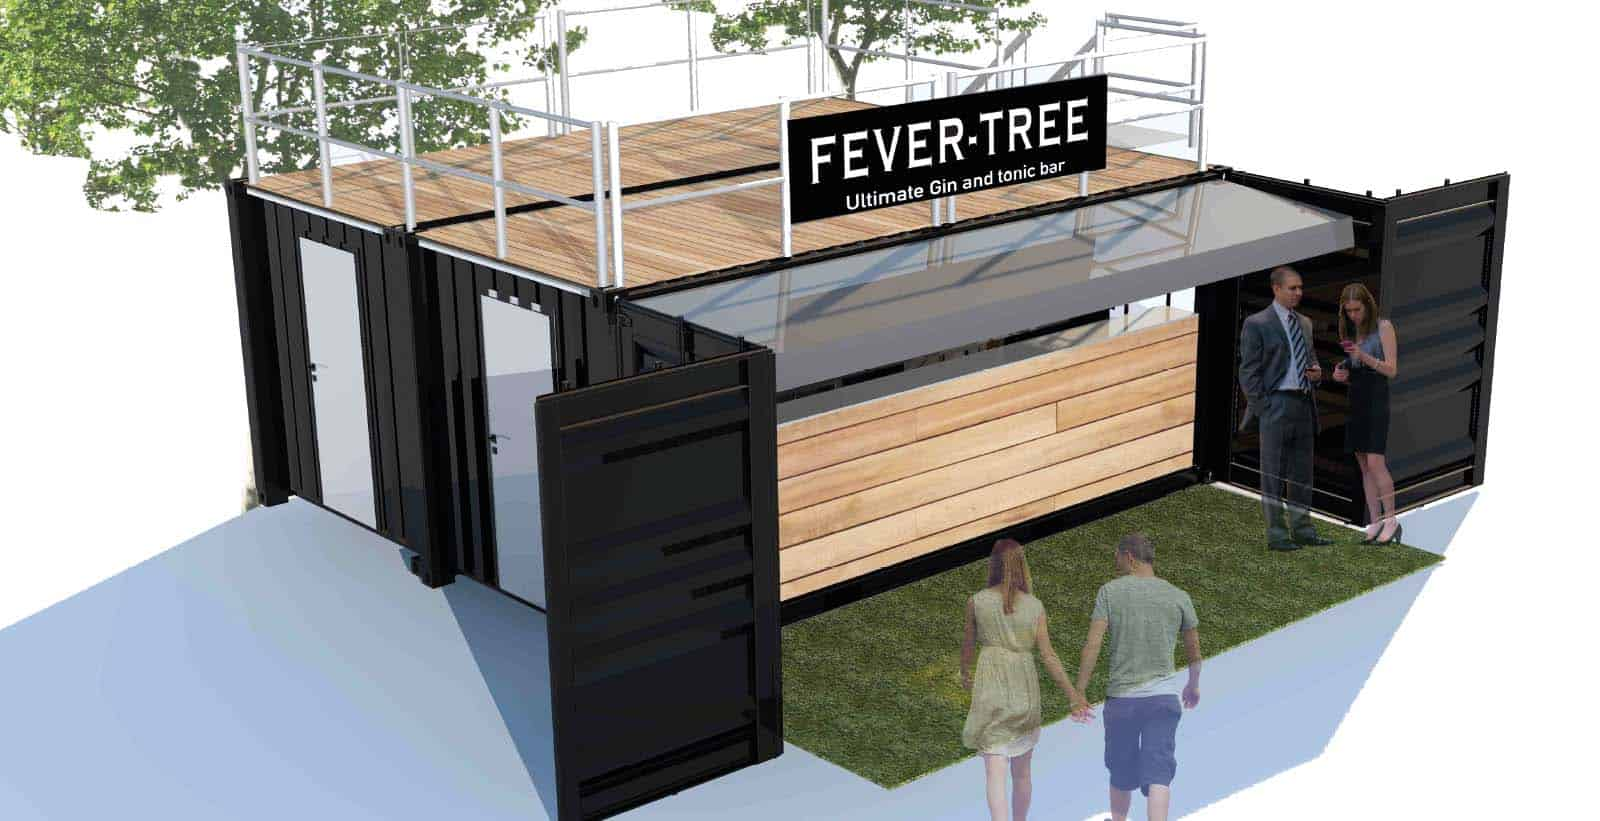 Bespoke shipping container bar for fevertree designs